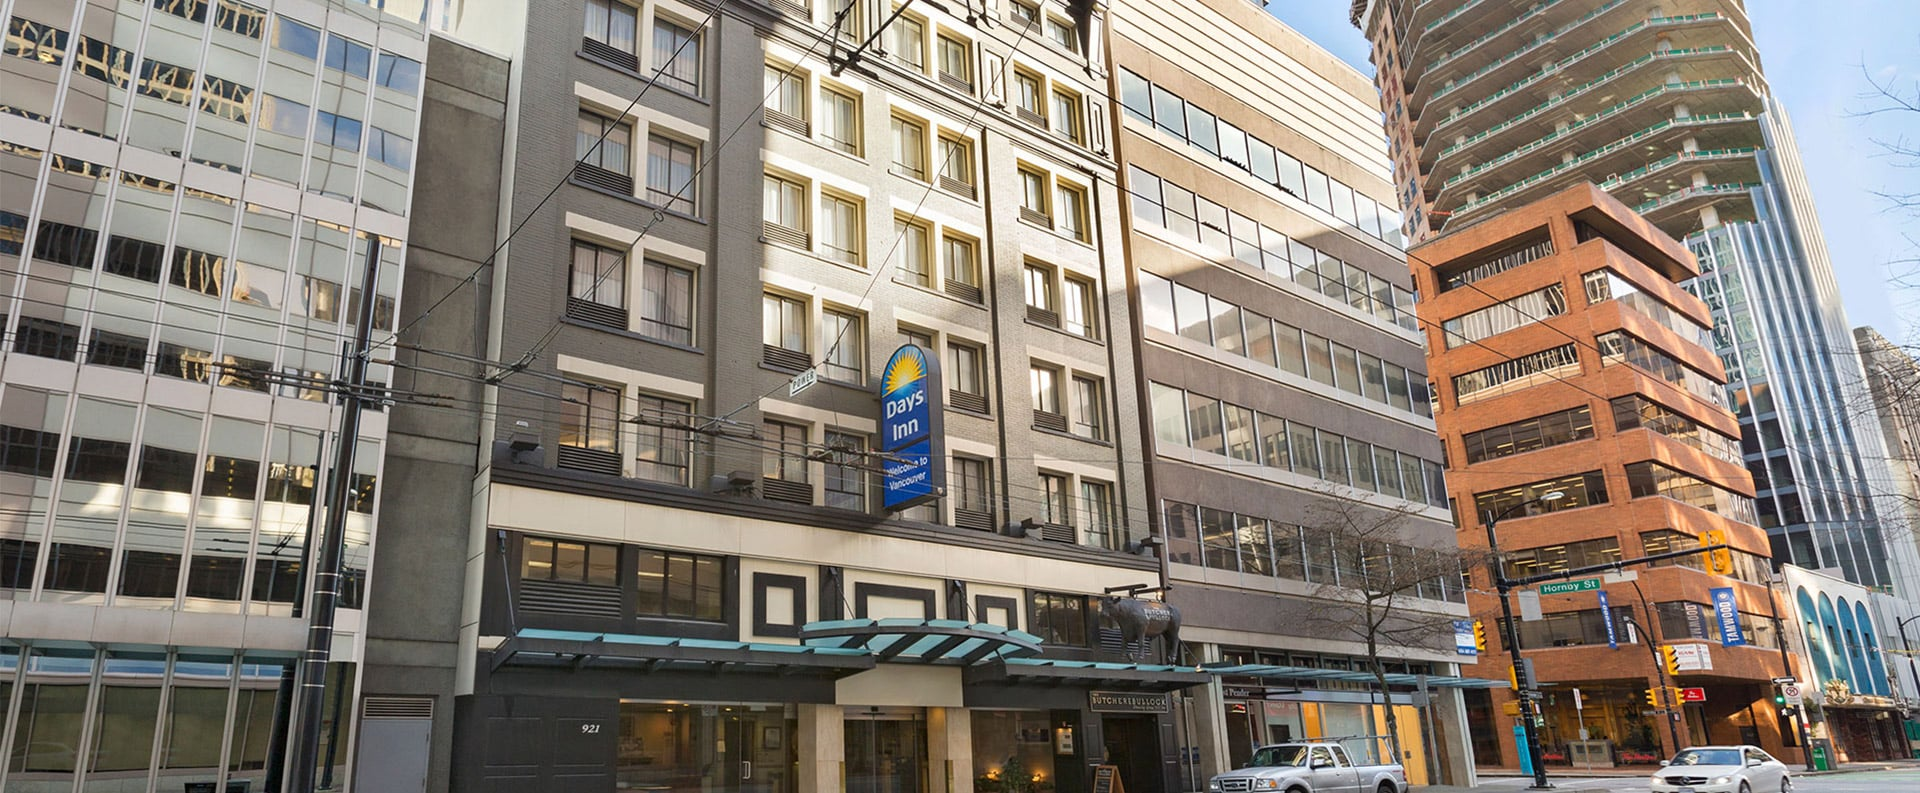 A large view of the front glass door entrance to Days Inn Vancouver Downtown with rows of windows of the hotel facing onto West Pender Street.